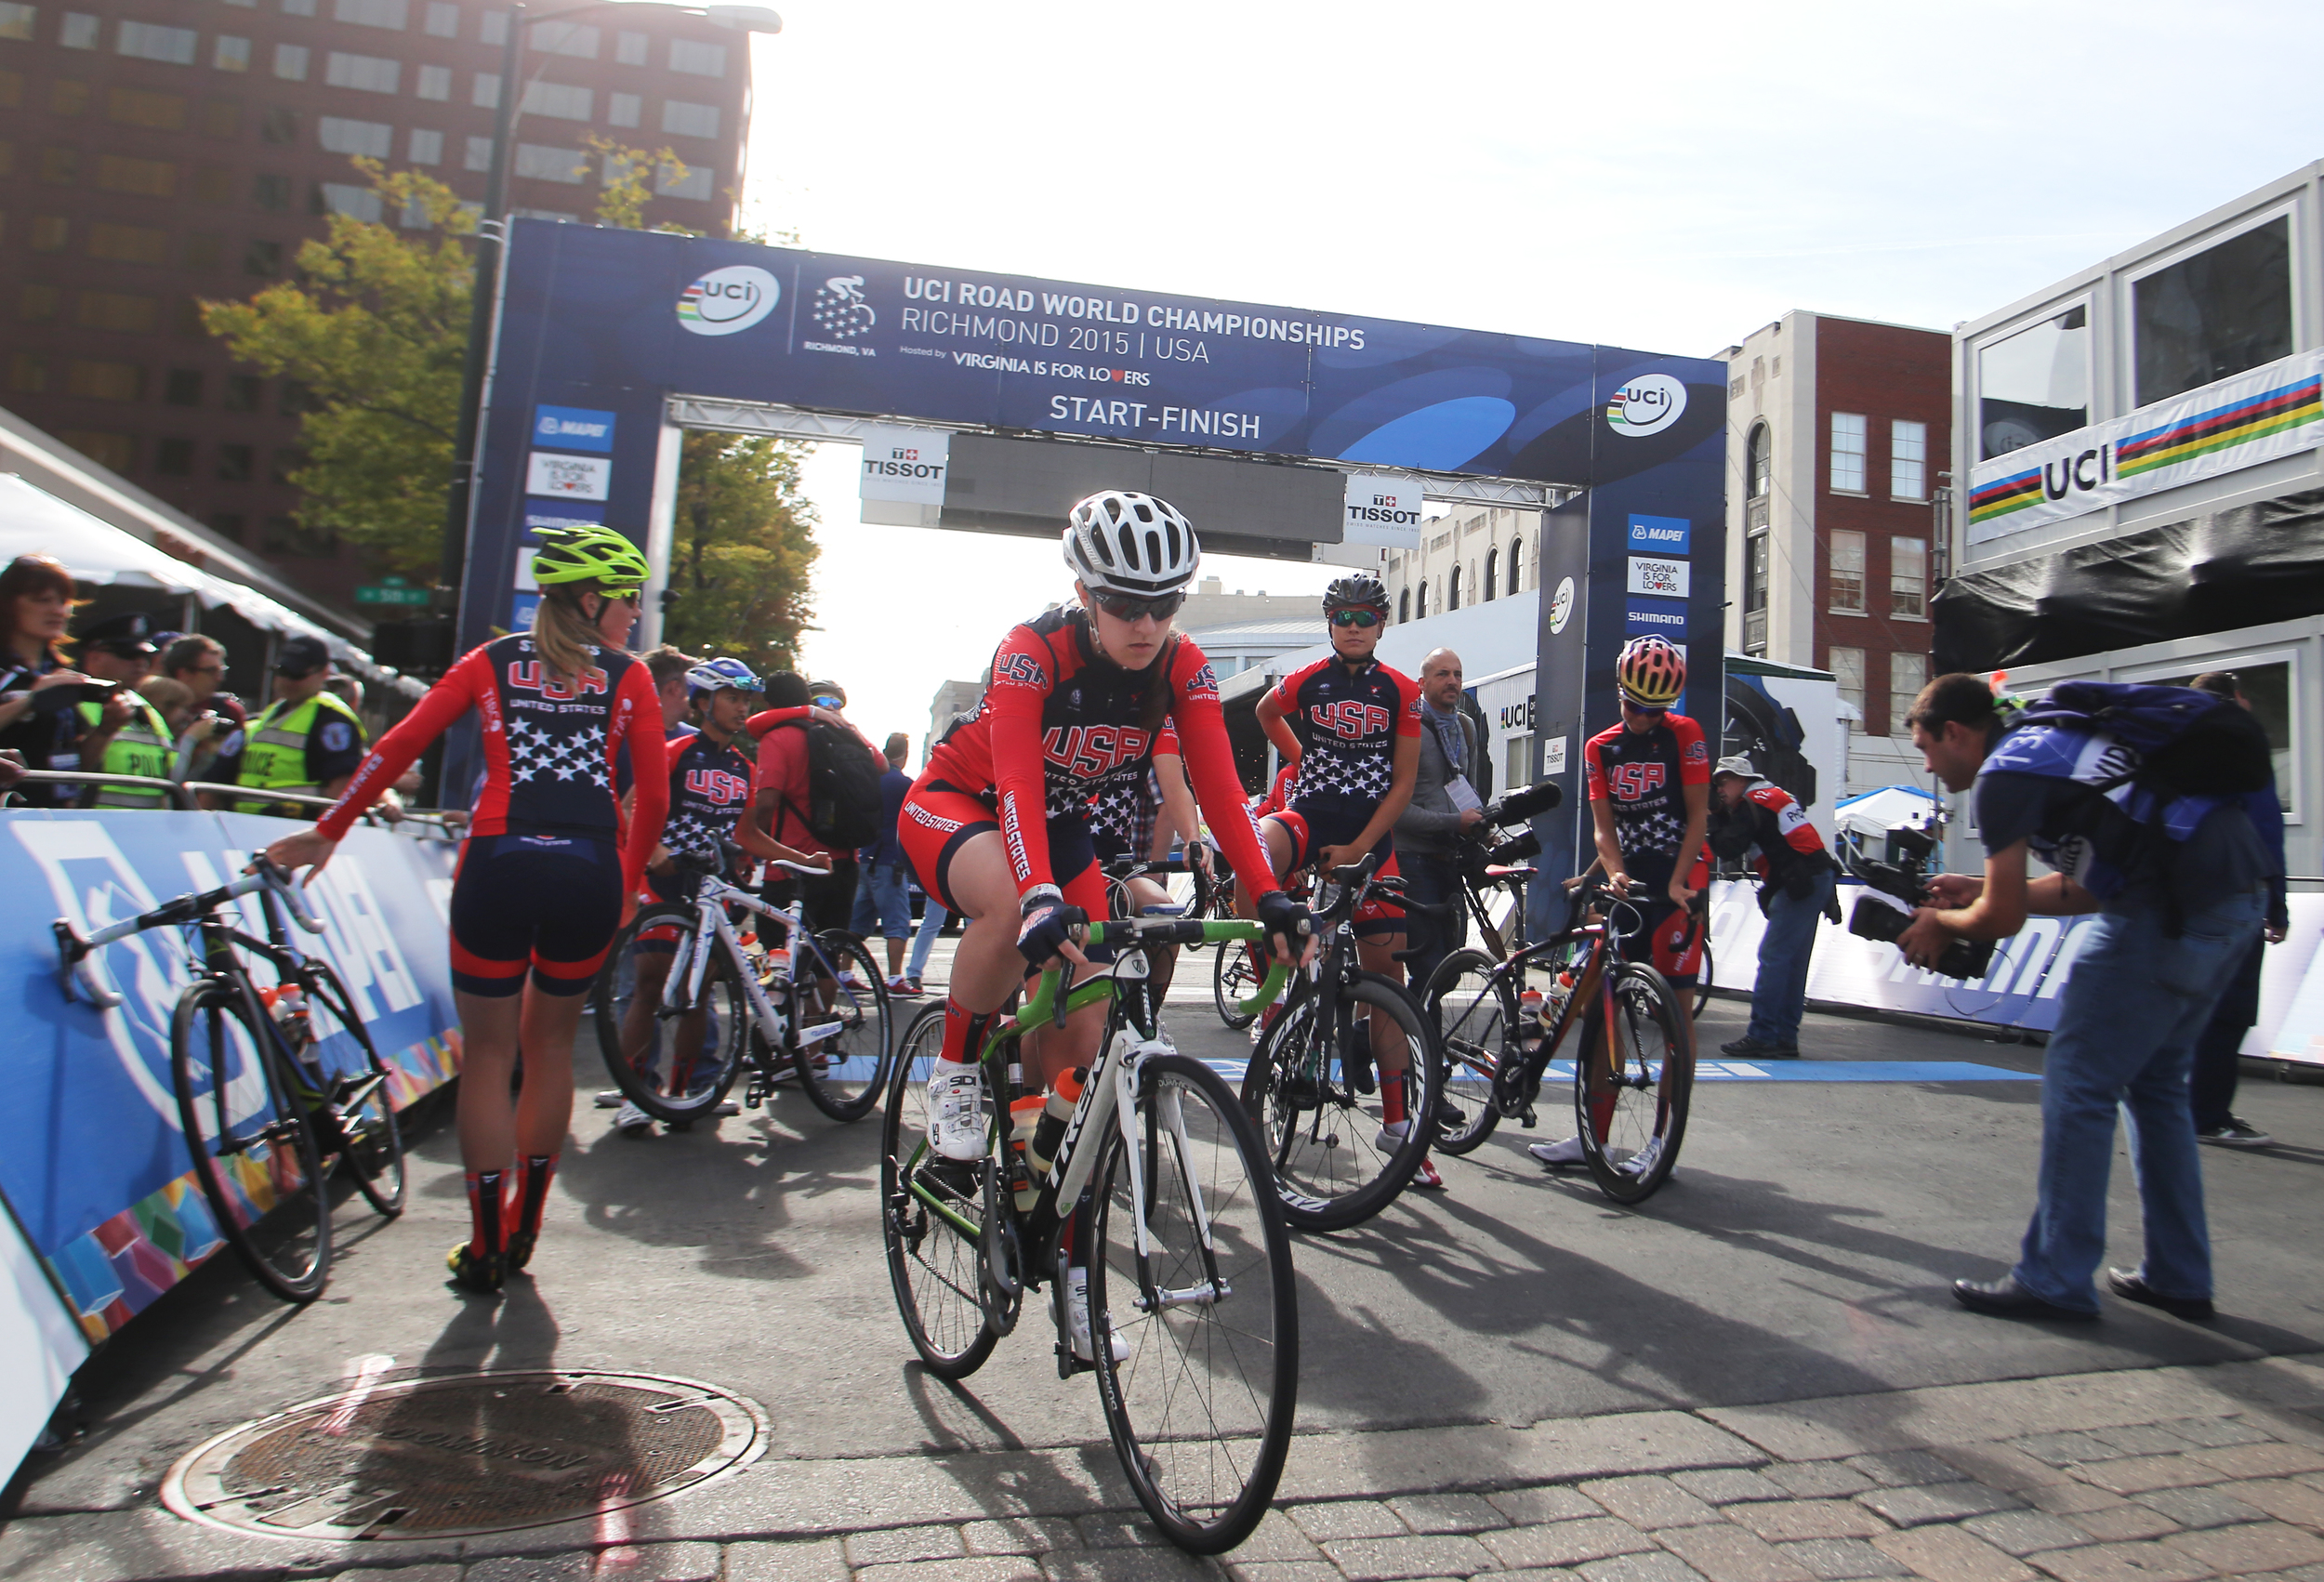 Members of the USA cycling team head out for the Road Circuit Training portion of the UCI Road World Championships cycling races in Richmond, Va., Thursday, Sept. 24, 2015. (AP Photo/Jason Hirschfeld)